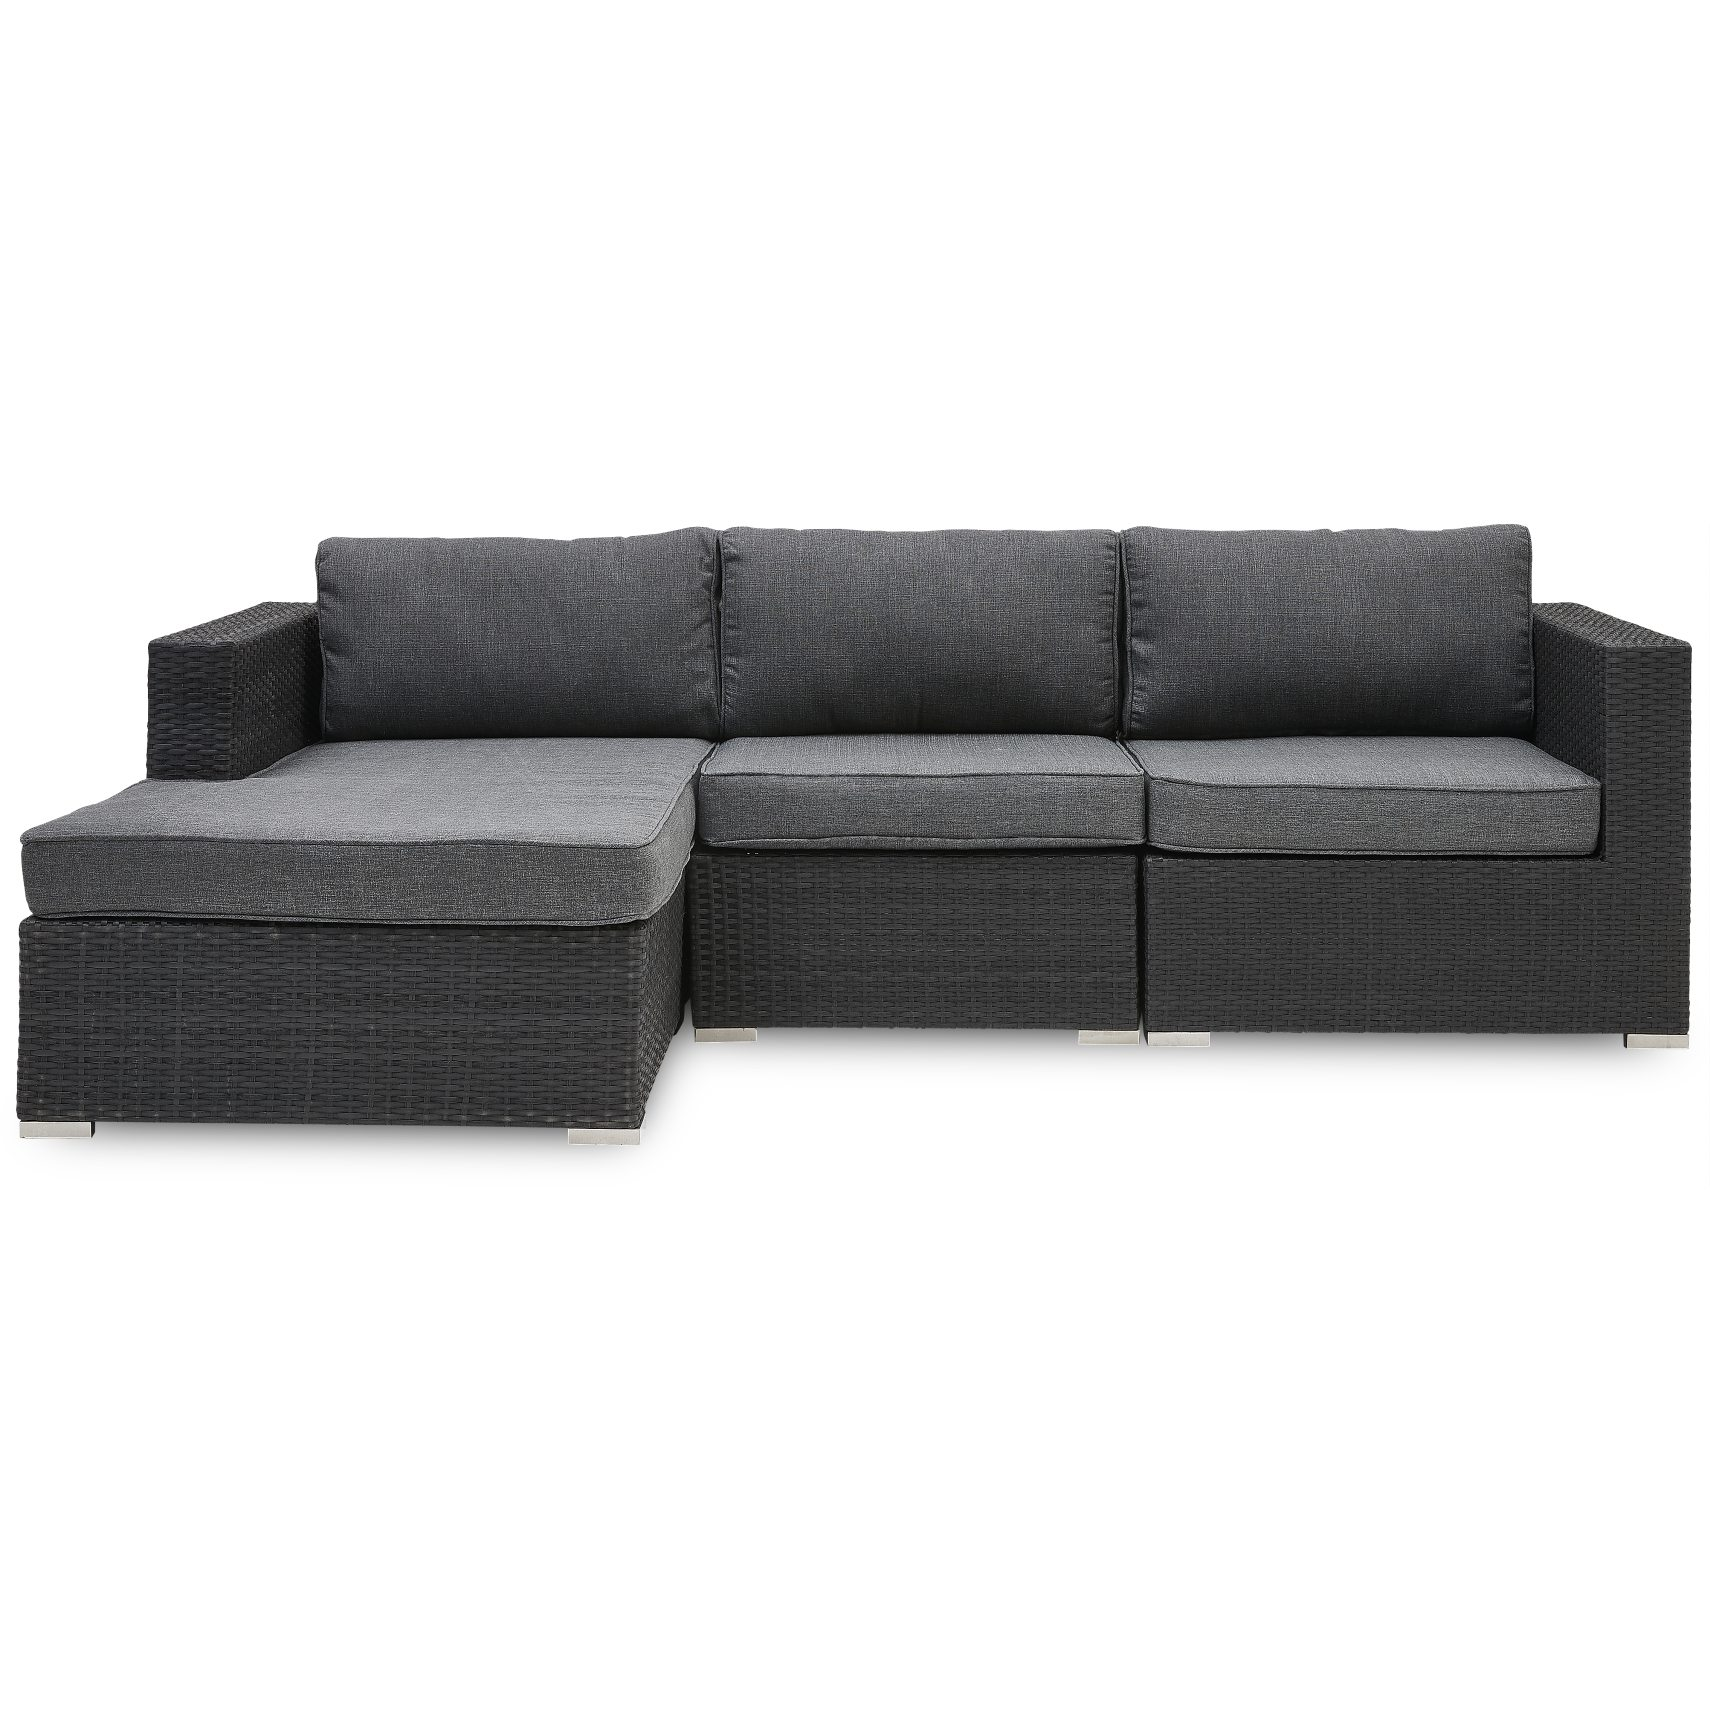 Lyon Loungesofa med chaiselong - Loungesofa med chaiselong